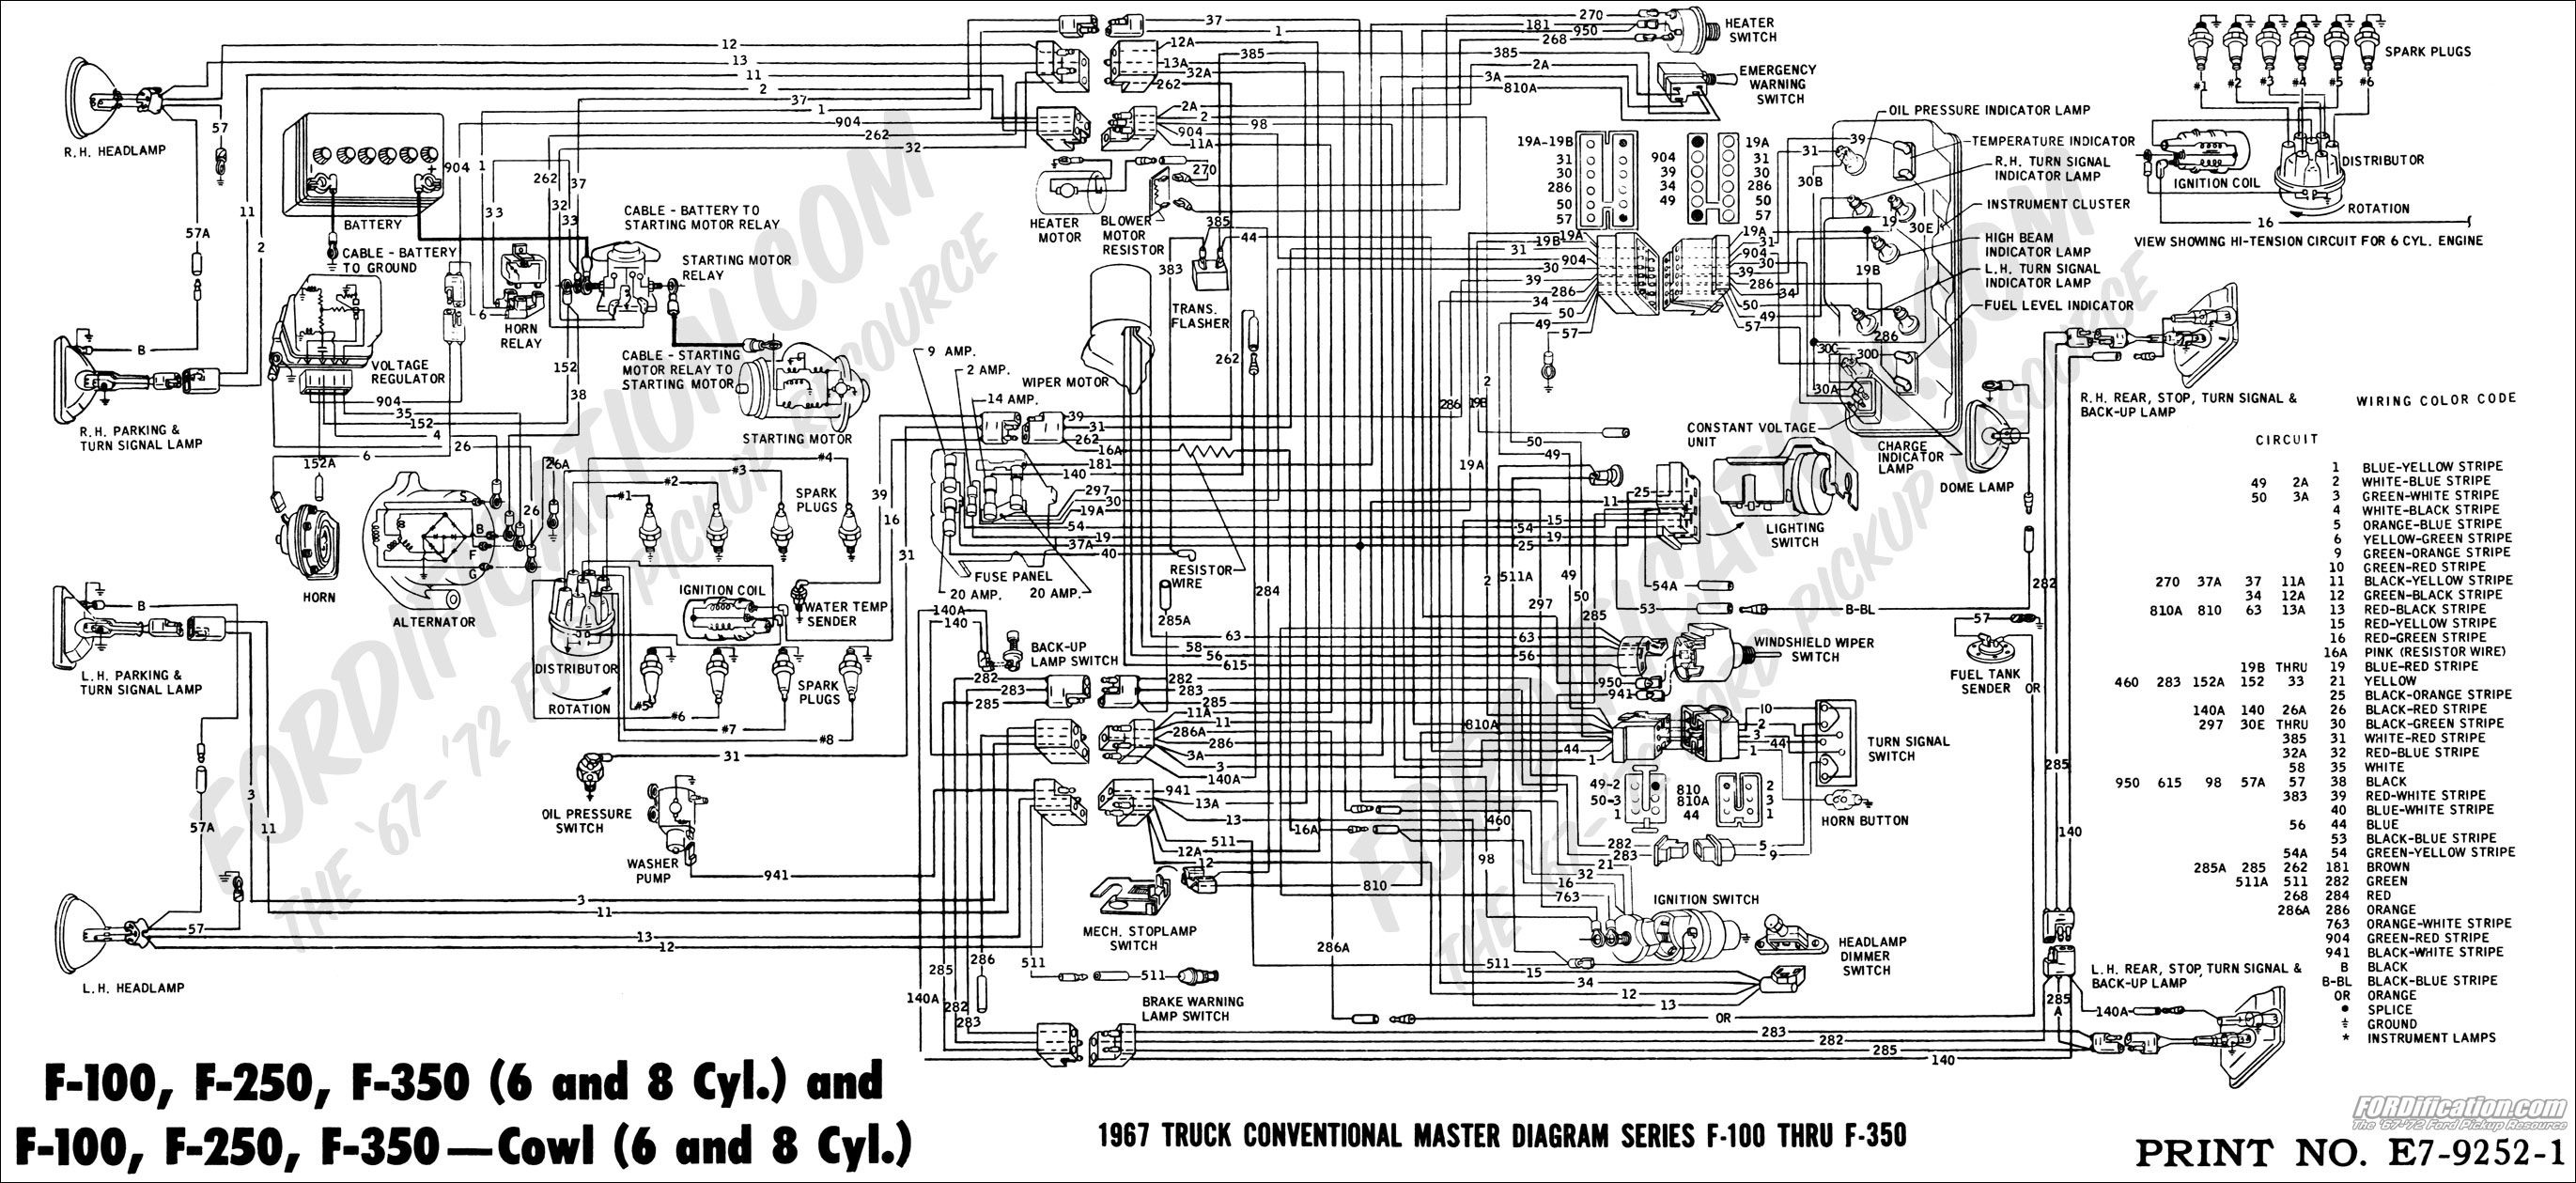 67masterdiagram wiring diagrams ford 2014 f150 readingrat net Ford Econoline Wiring-Diagram at soozxer.org